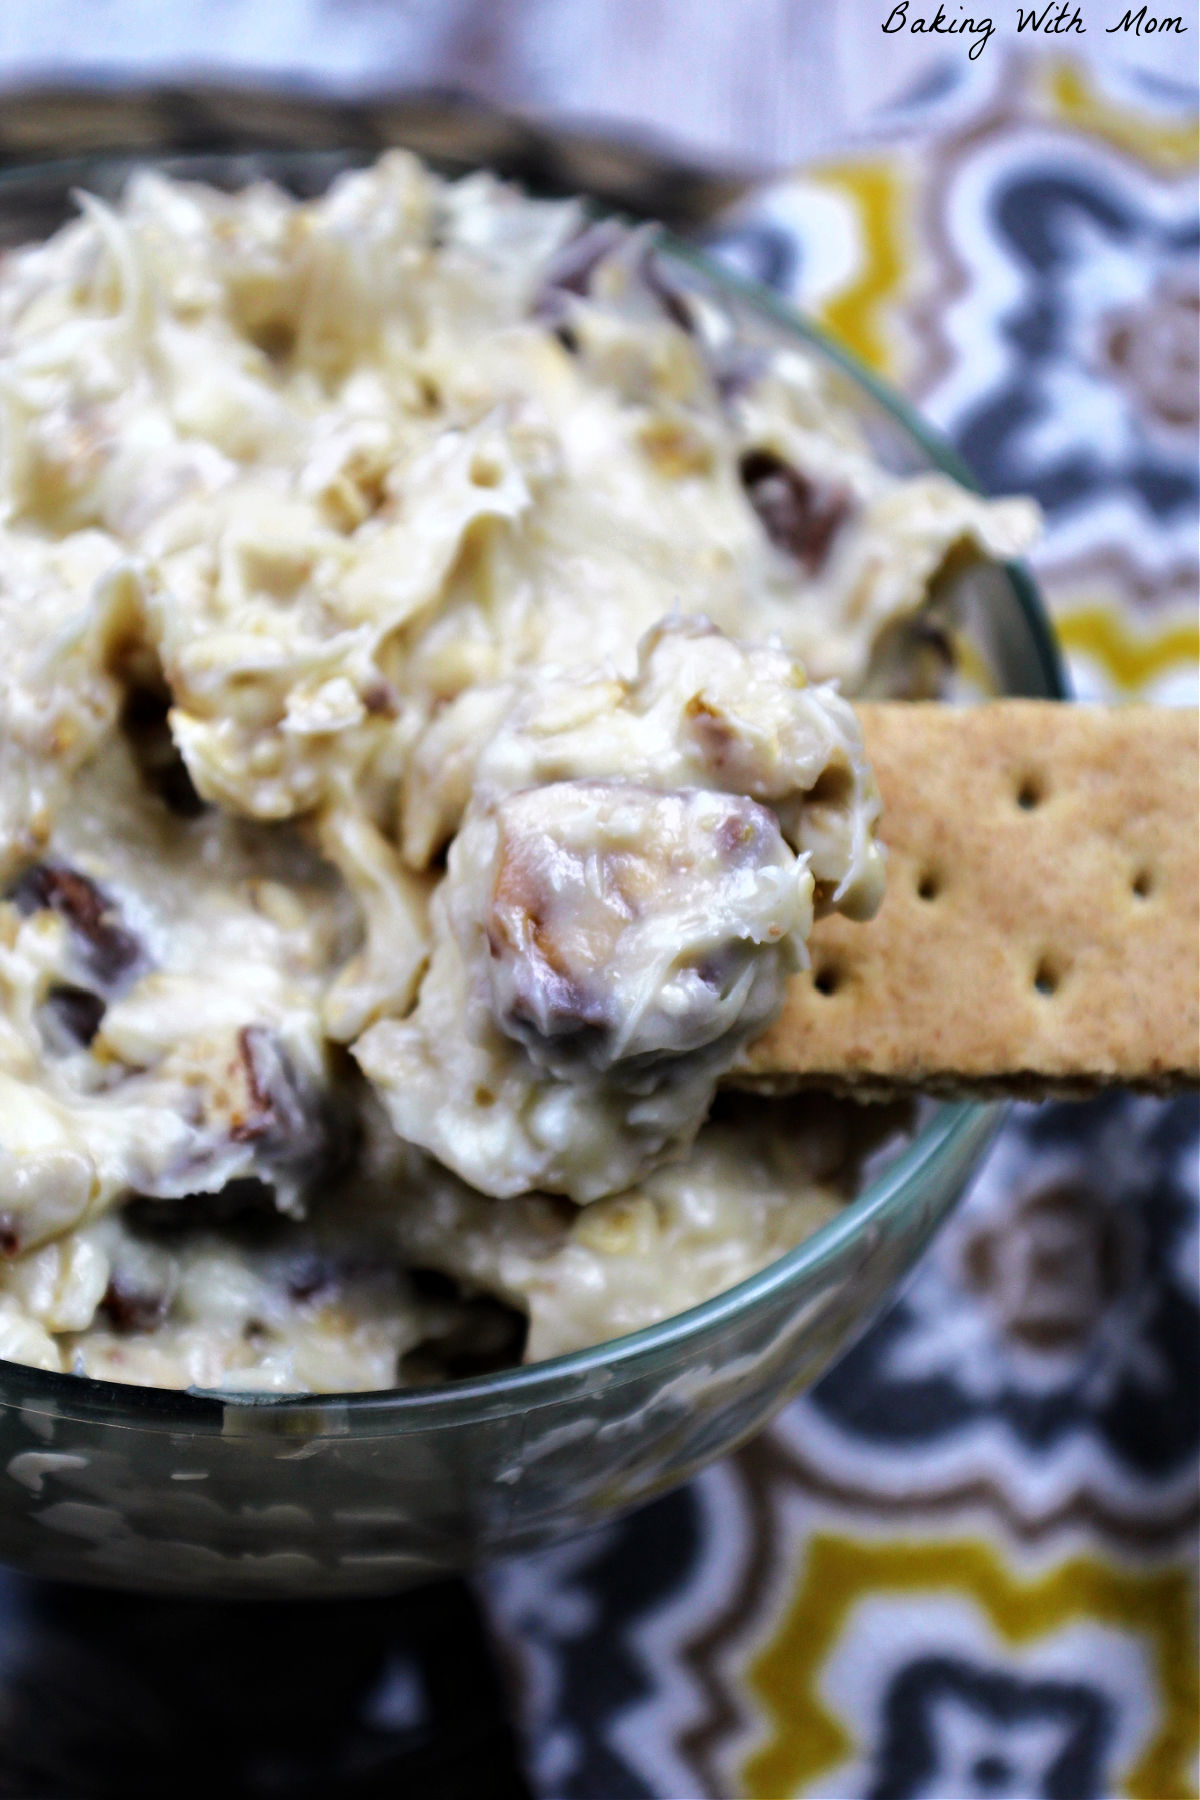 Graham crackers dipped in a creamy snickers dip.